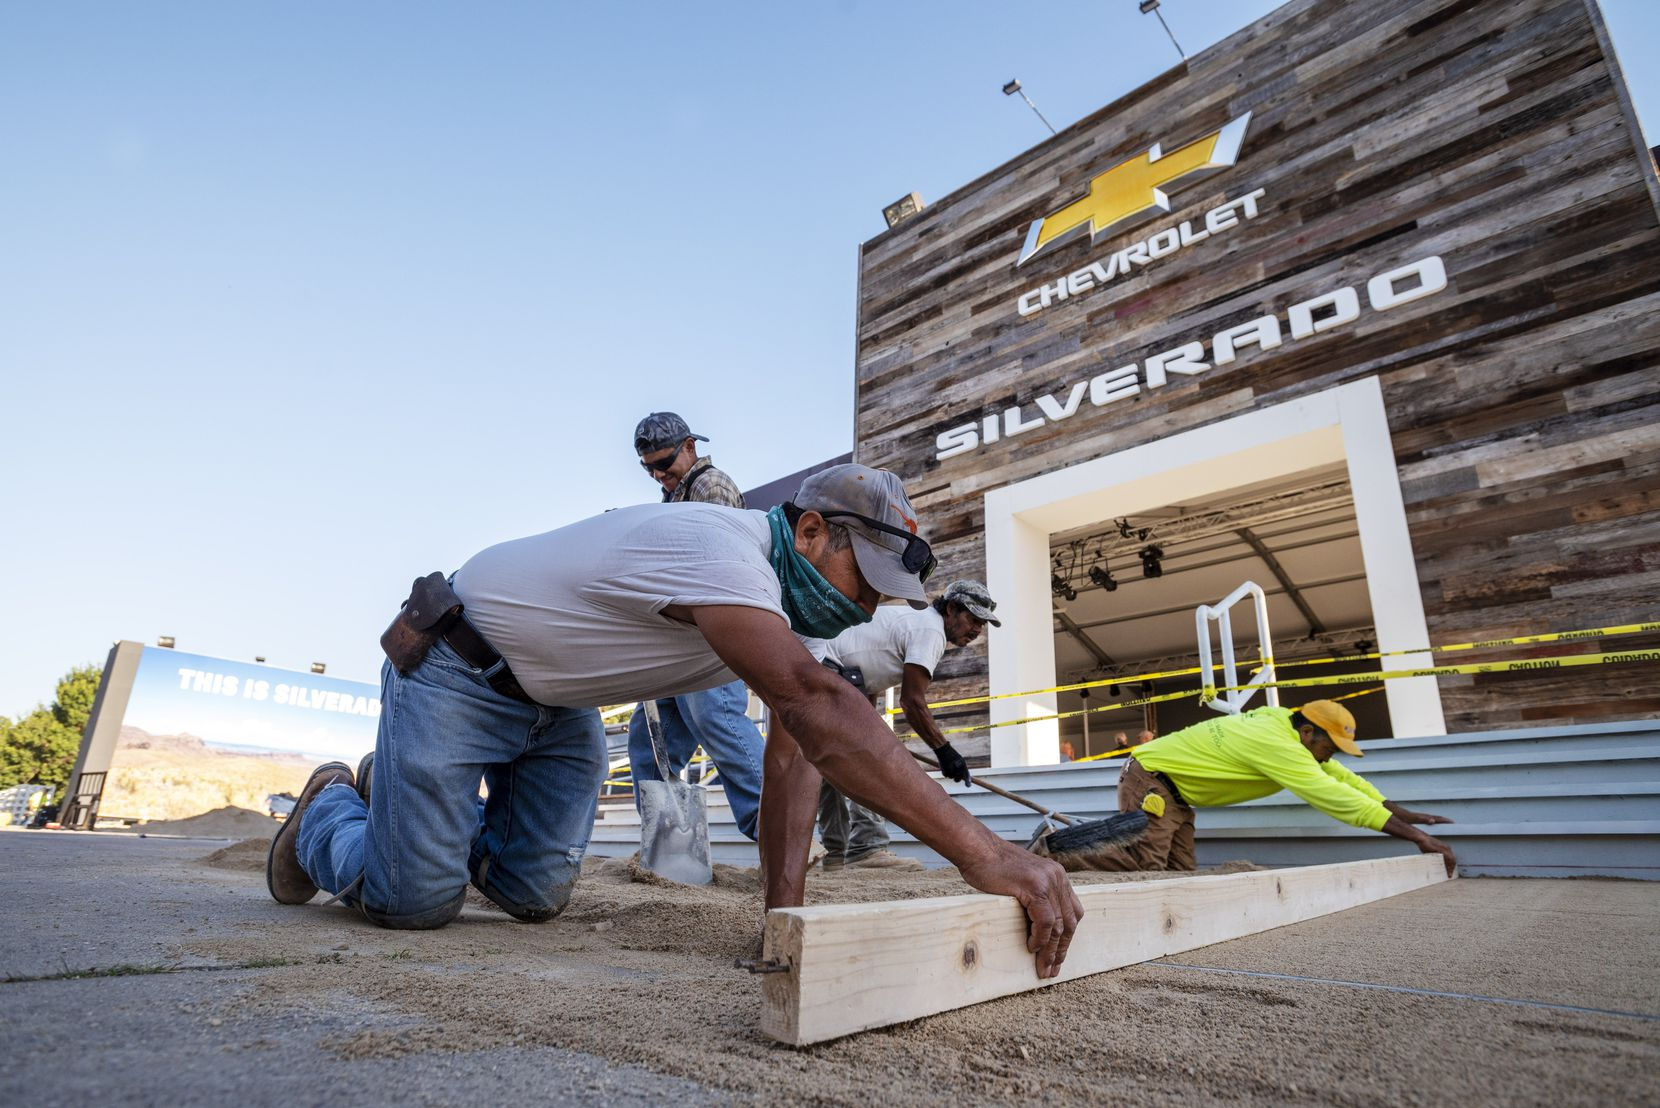 The Chevrolet Silverado will be a prominent player at the upcoming auto show at the State Fair of Texas. A work crew laid down a brick pathway this week as part of the exhibit.